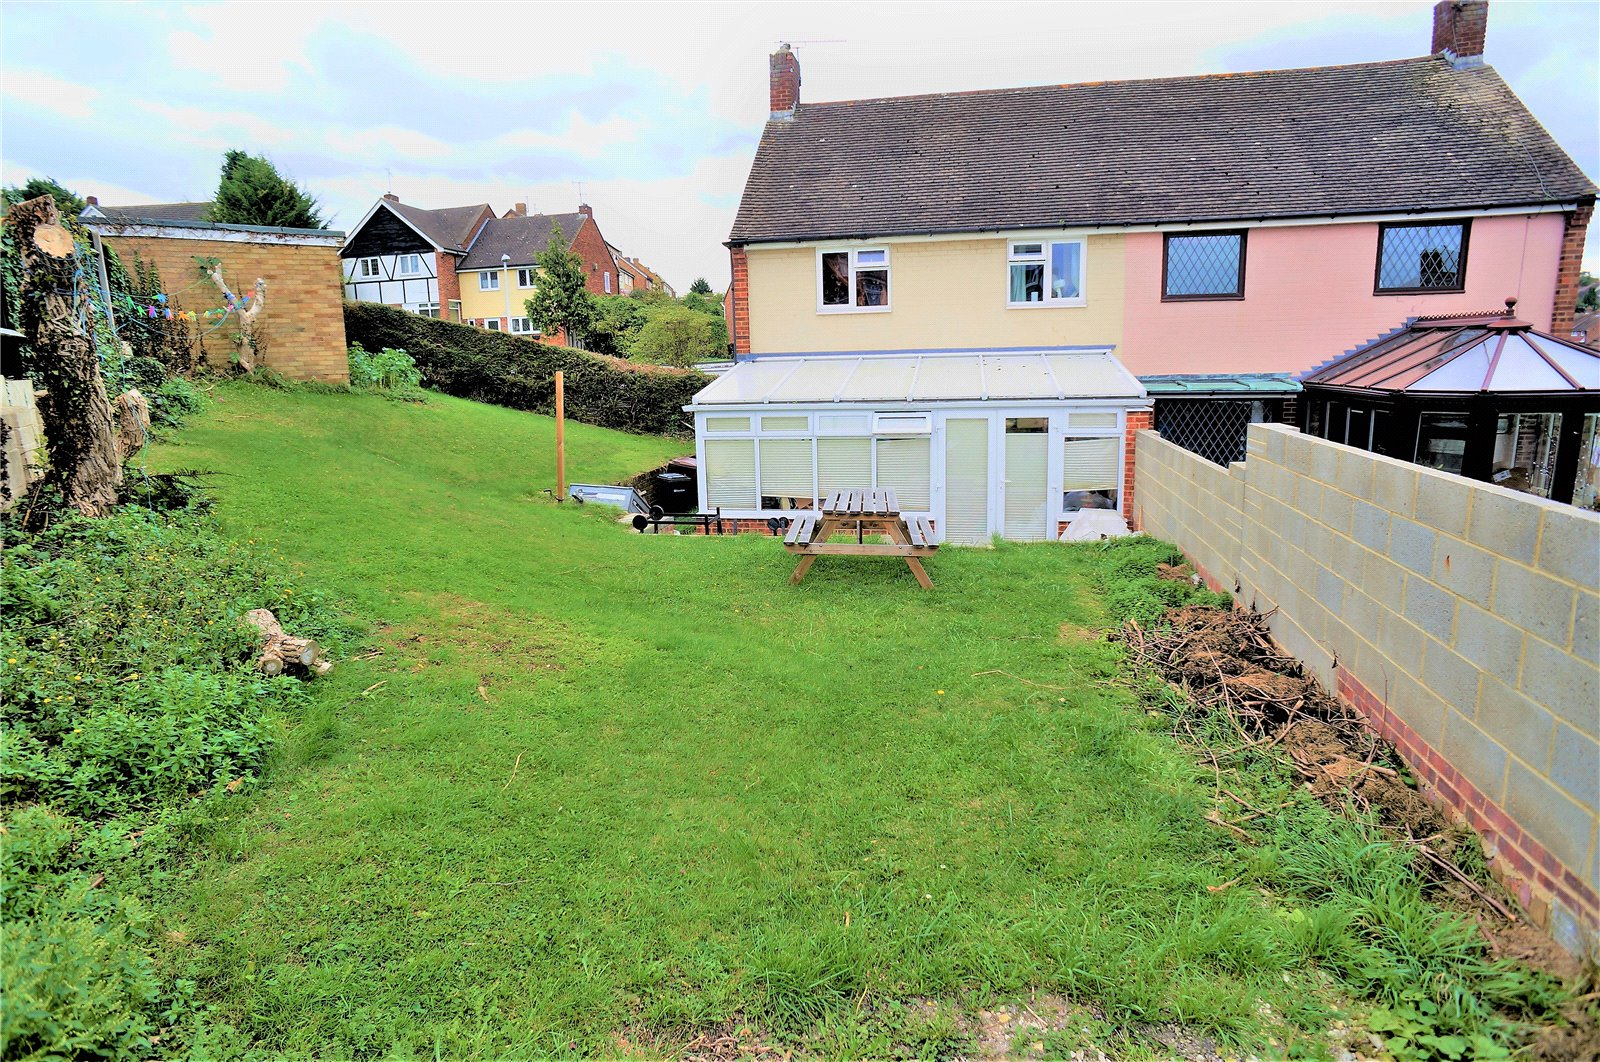 3 Bedrooms Semi Detached House for sale in Hazel Grove, Chatham, Kent, ME5